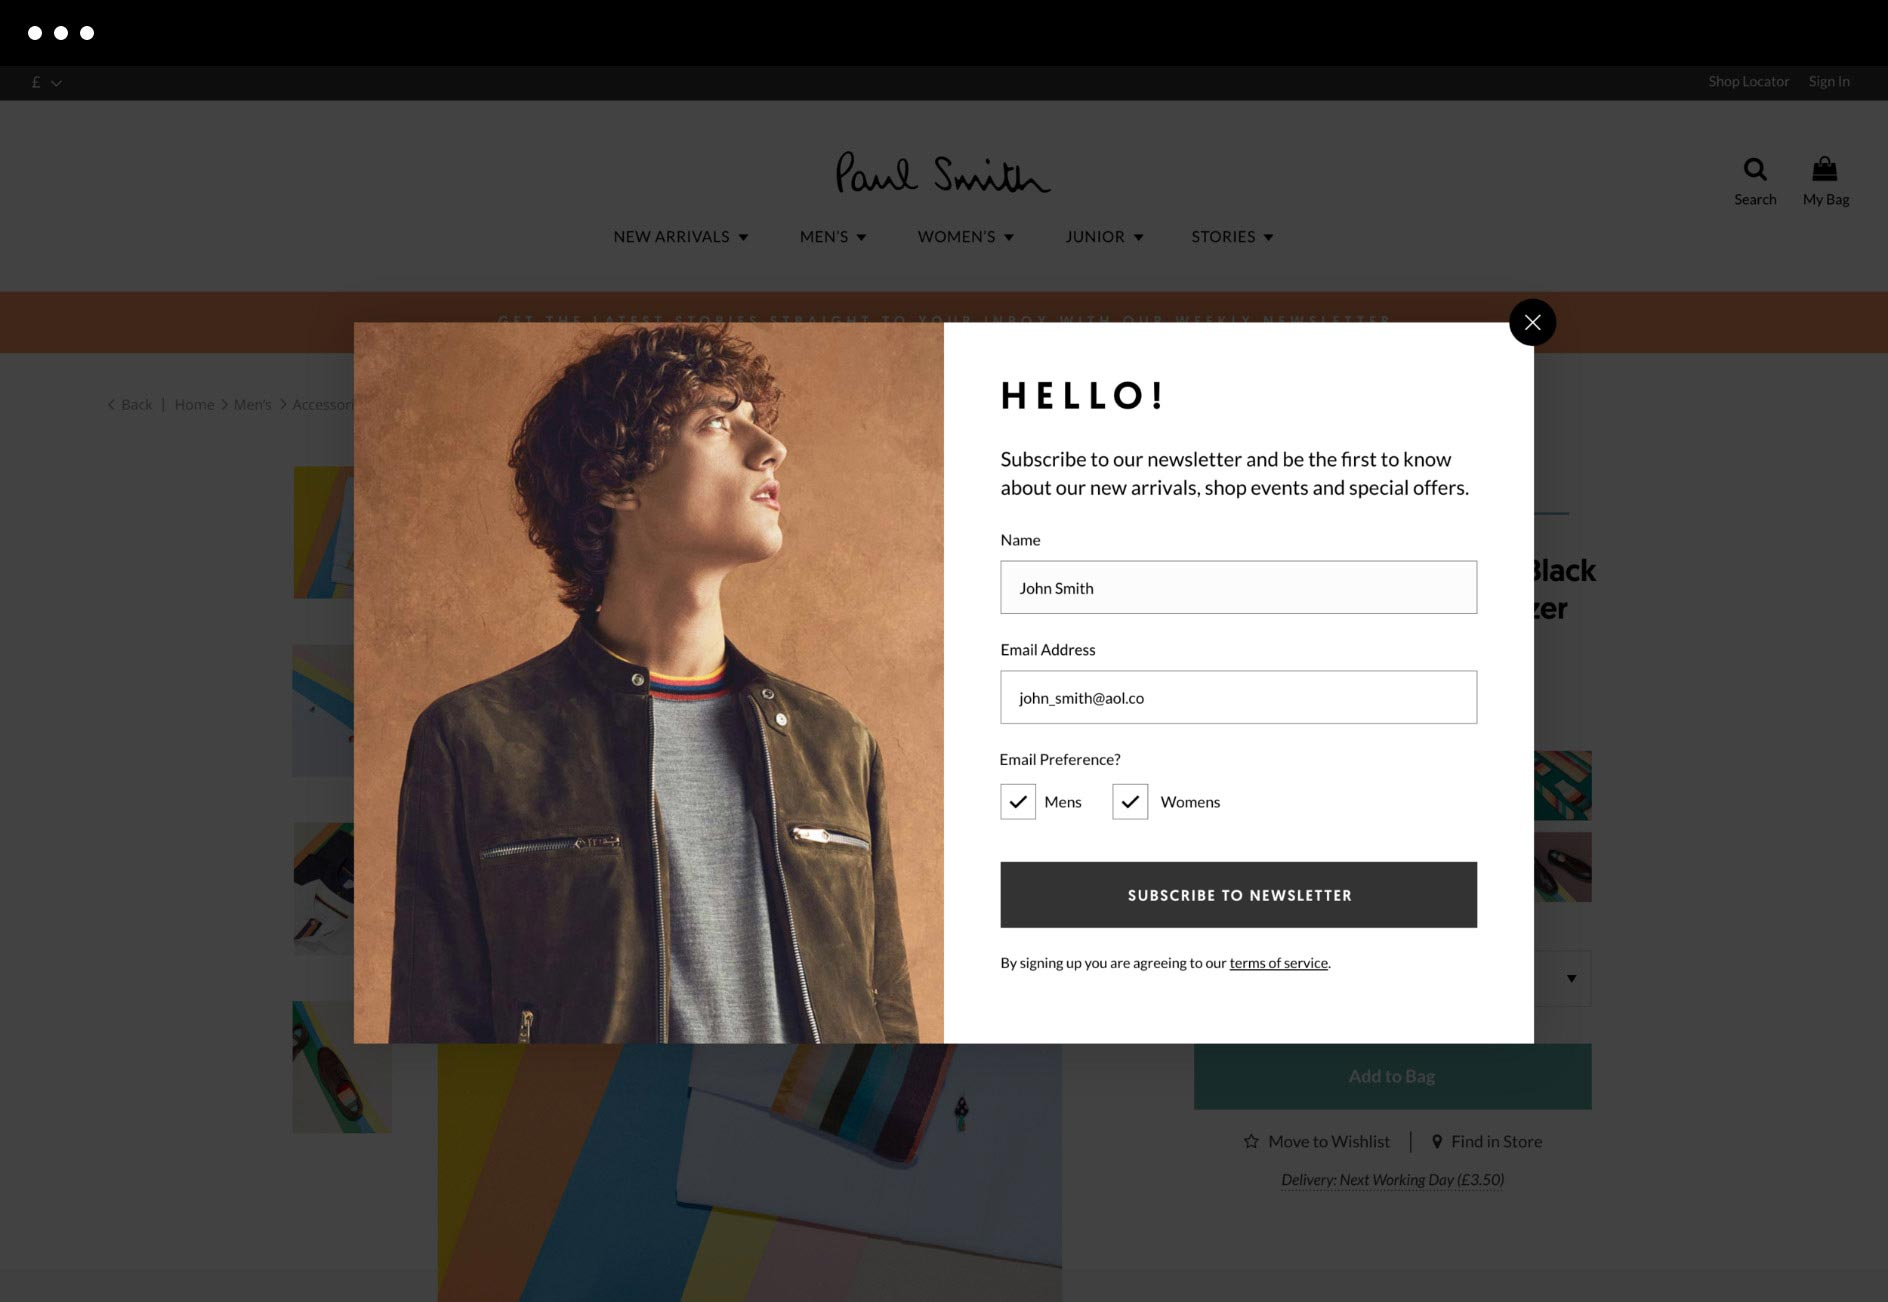 Paul Smith Newsletters Design